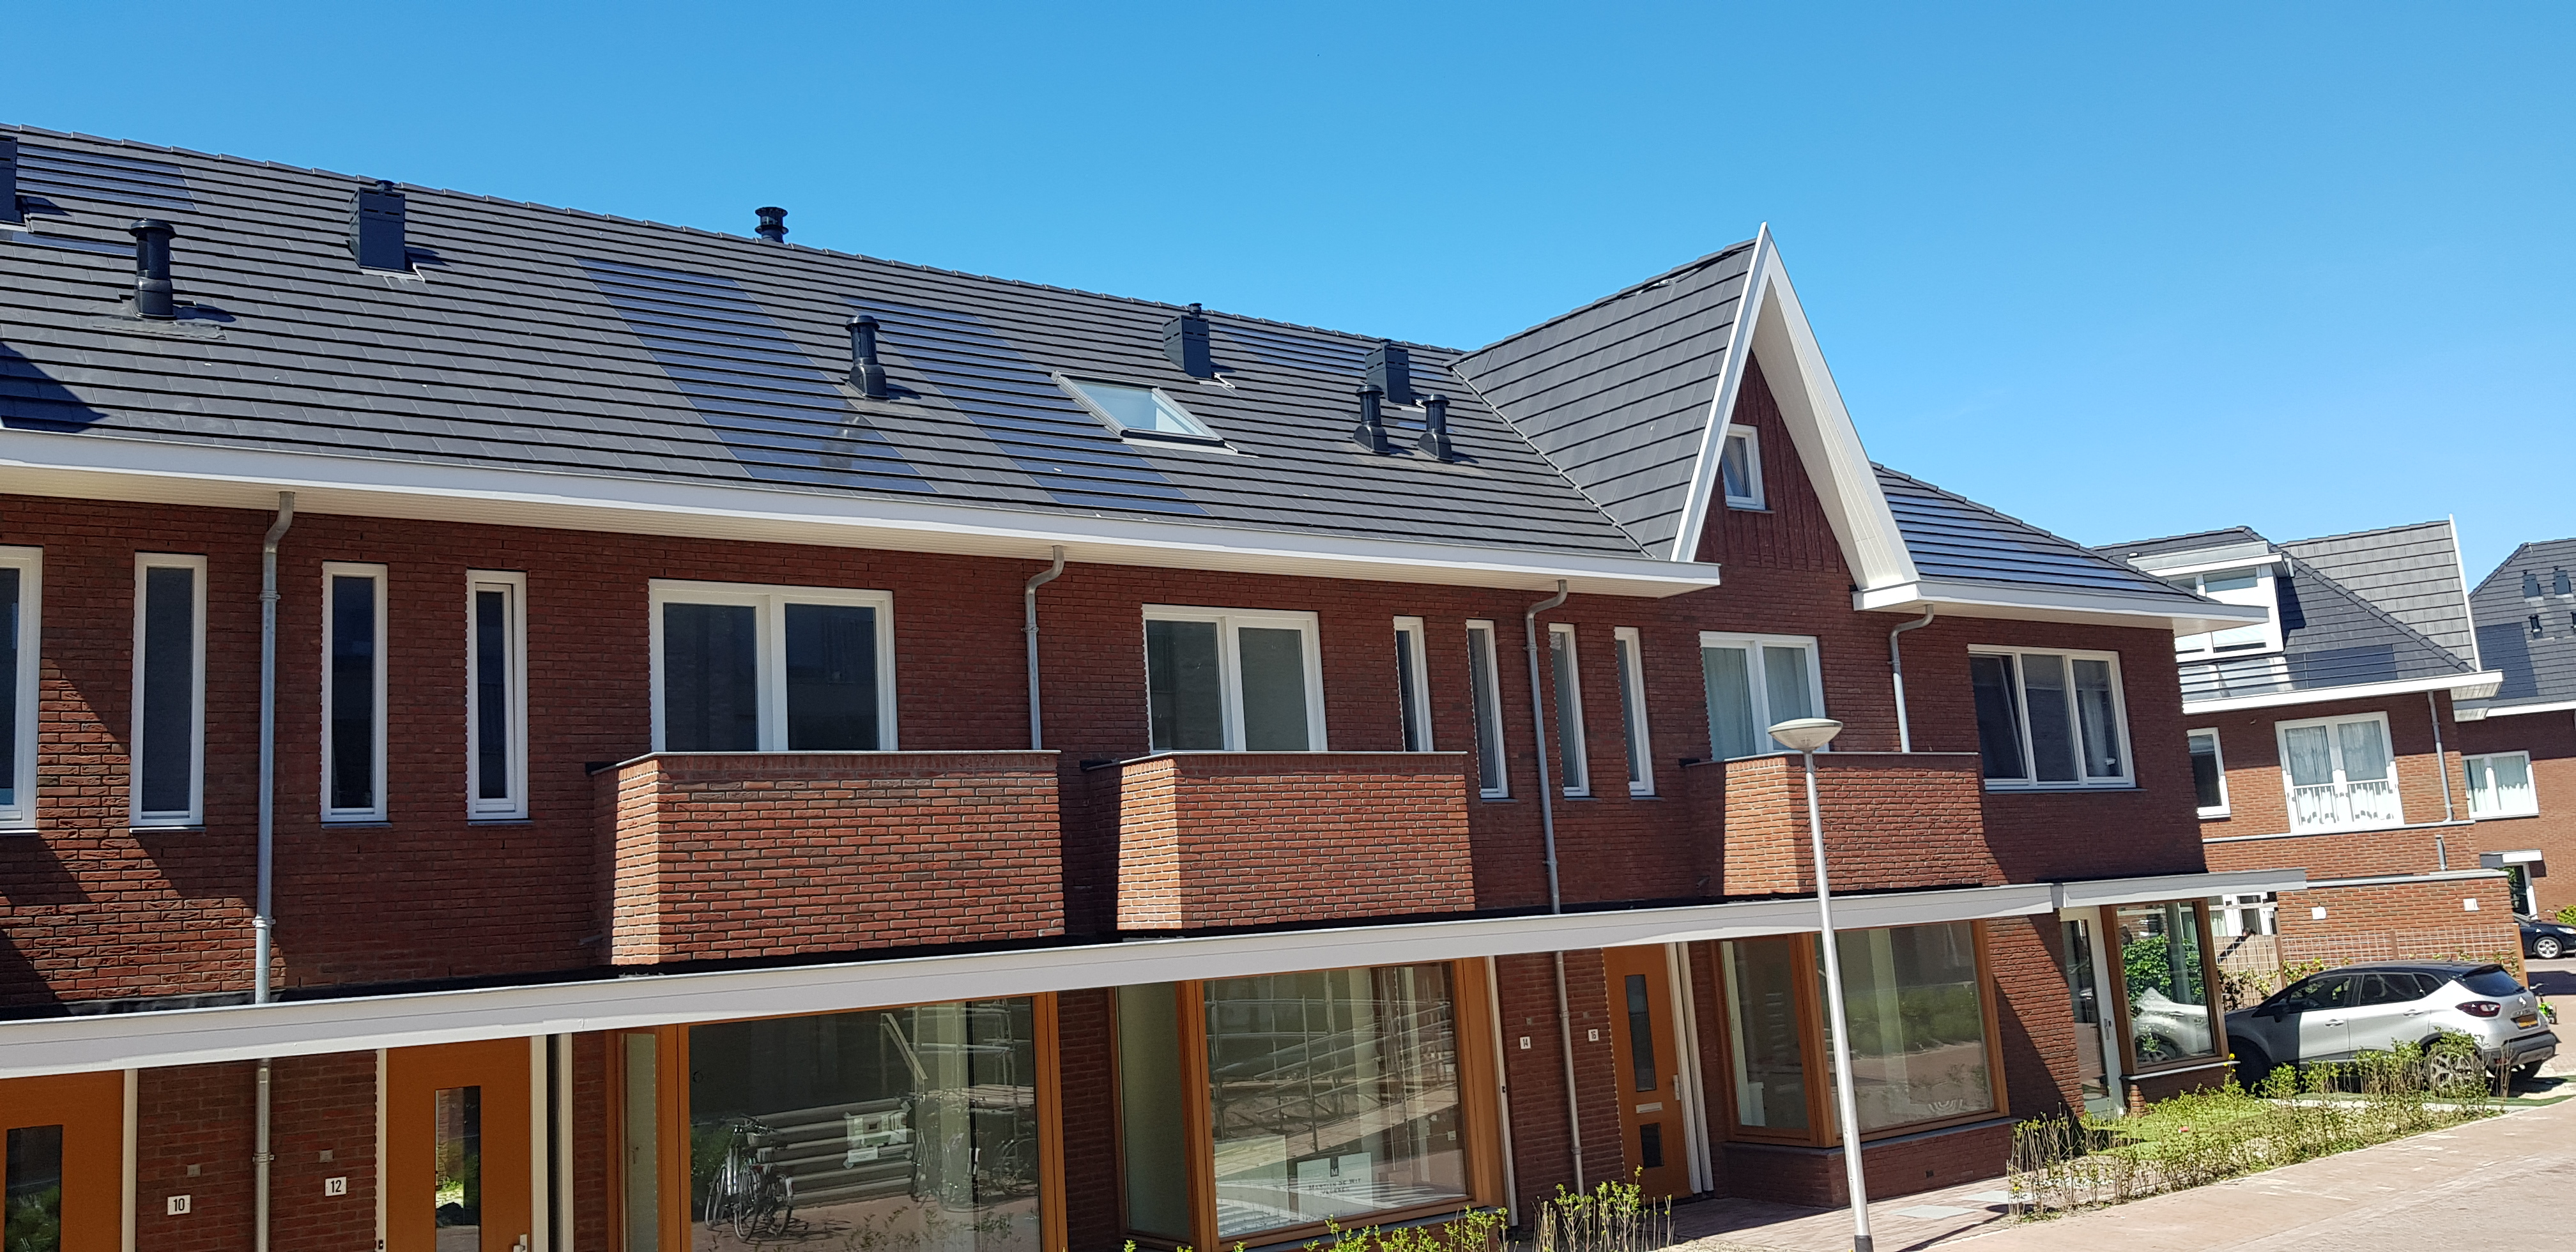 Mystique solar roof tiles on row houses